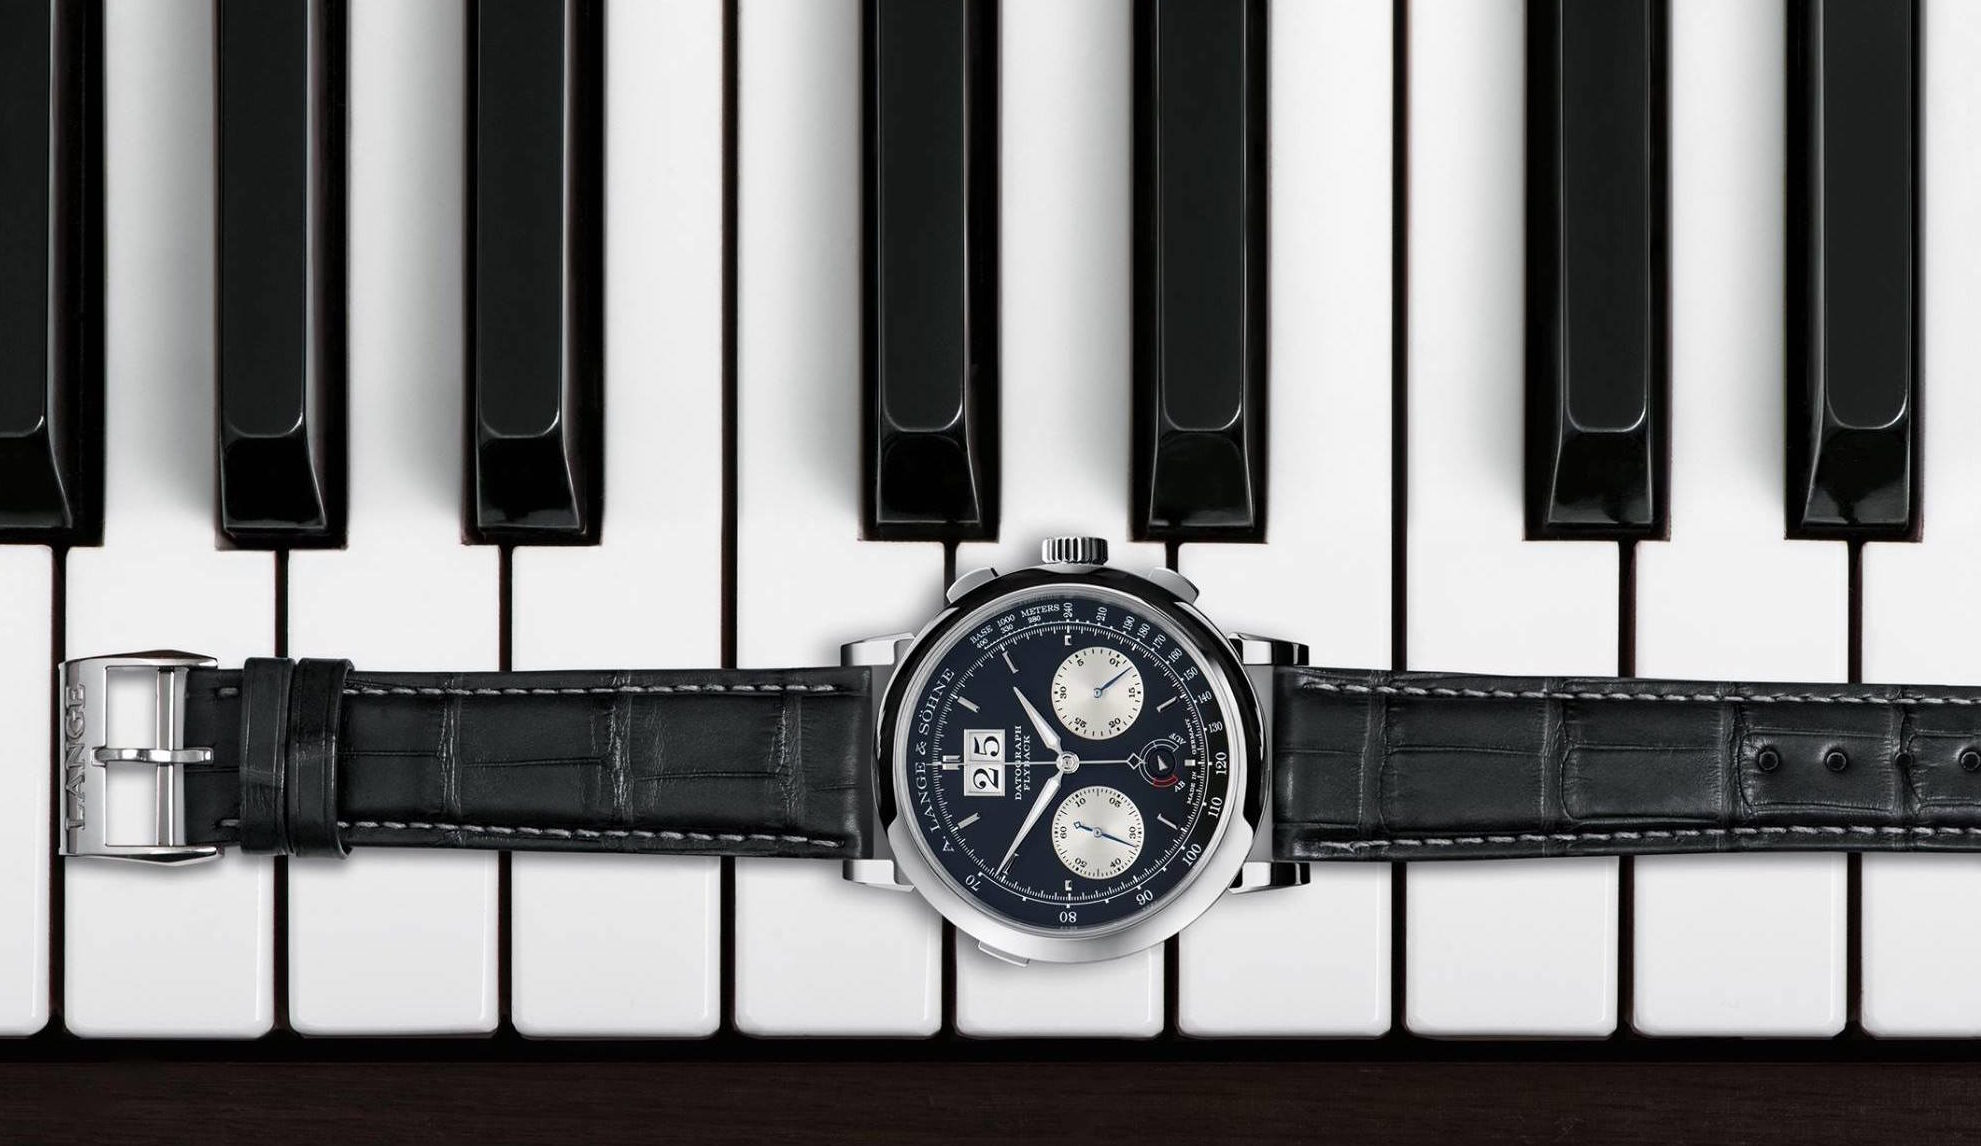 Add These 5 German Watchmakers To Your List Of Favourites